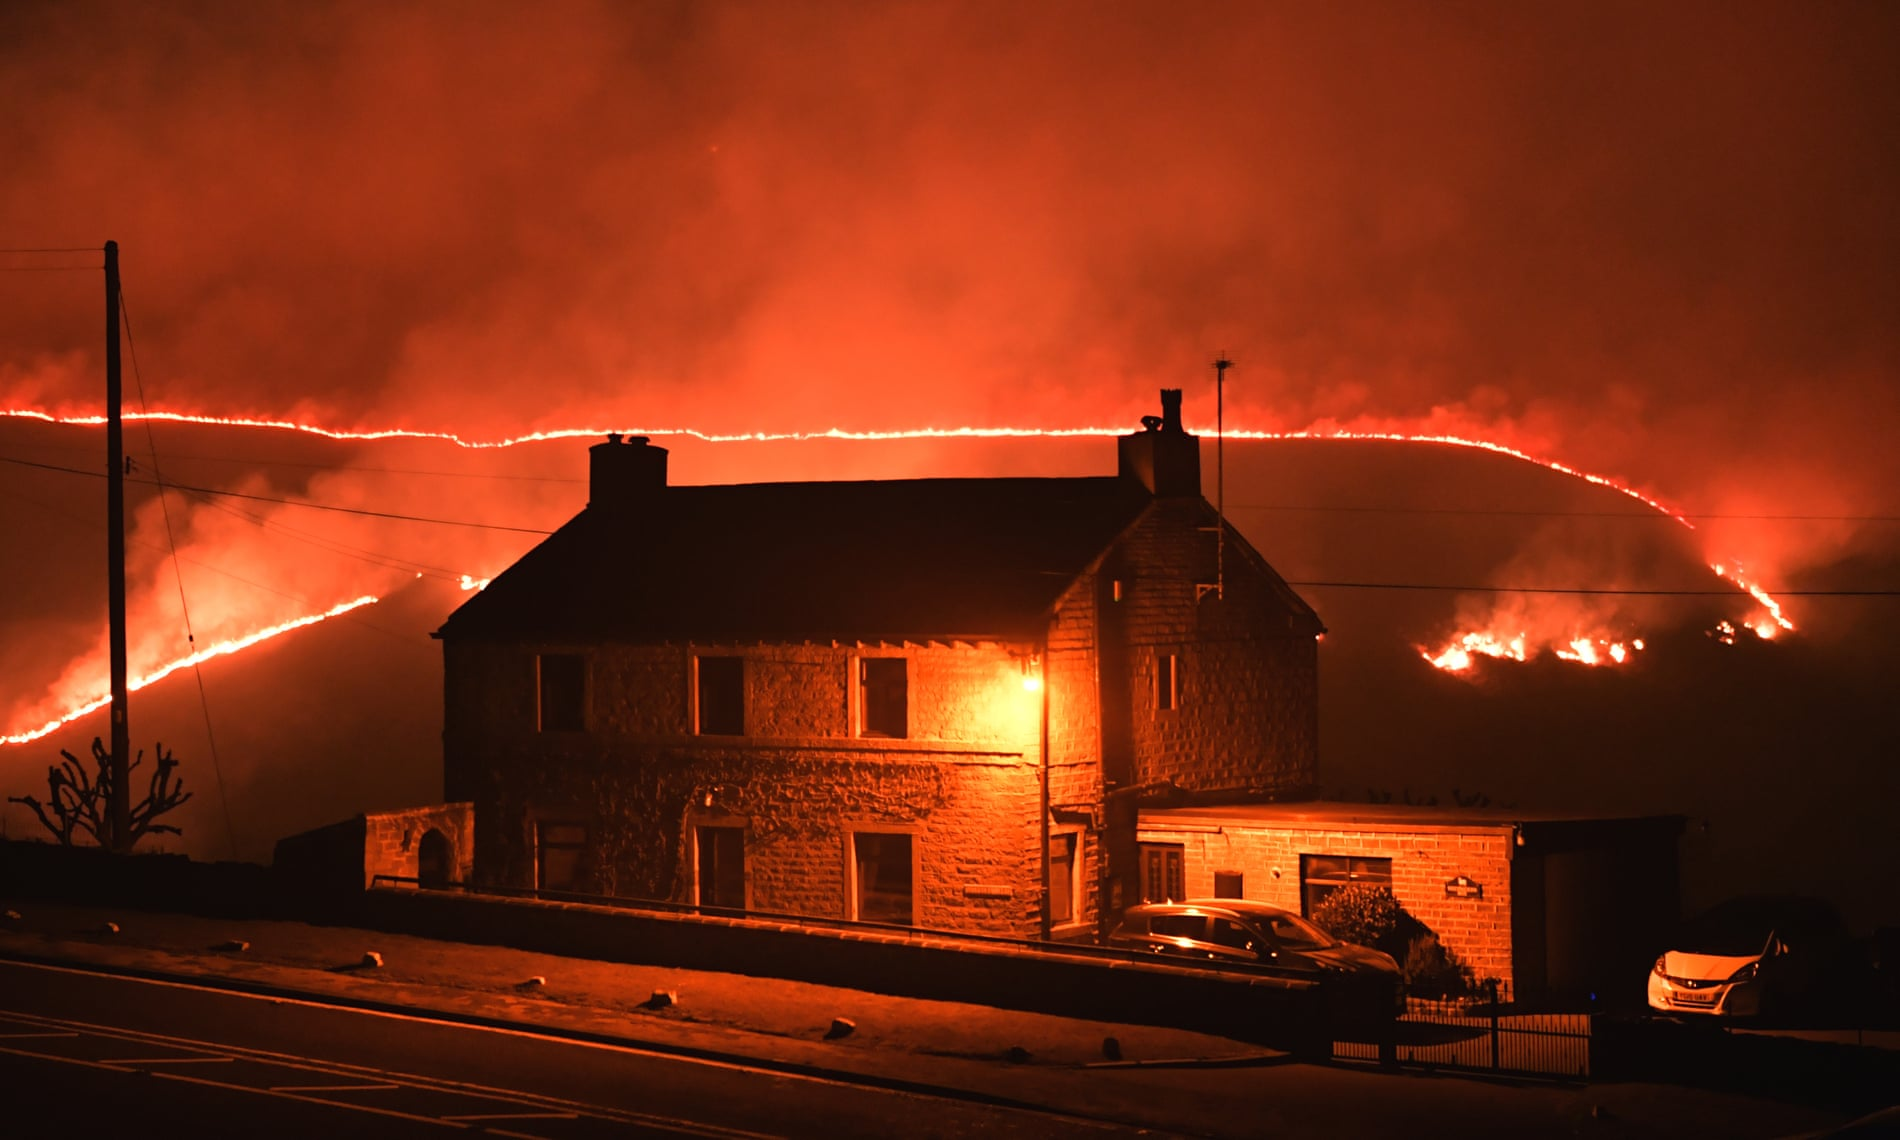 Firefighters Tackle Huge Blaze On Saddleworth Moor Following Hottest Winter Day